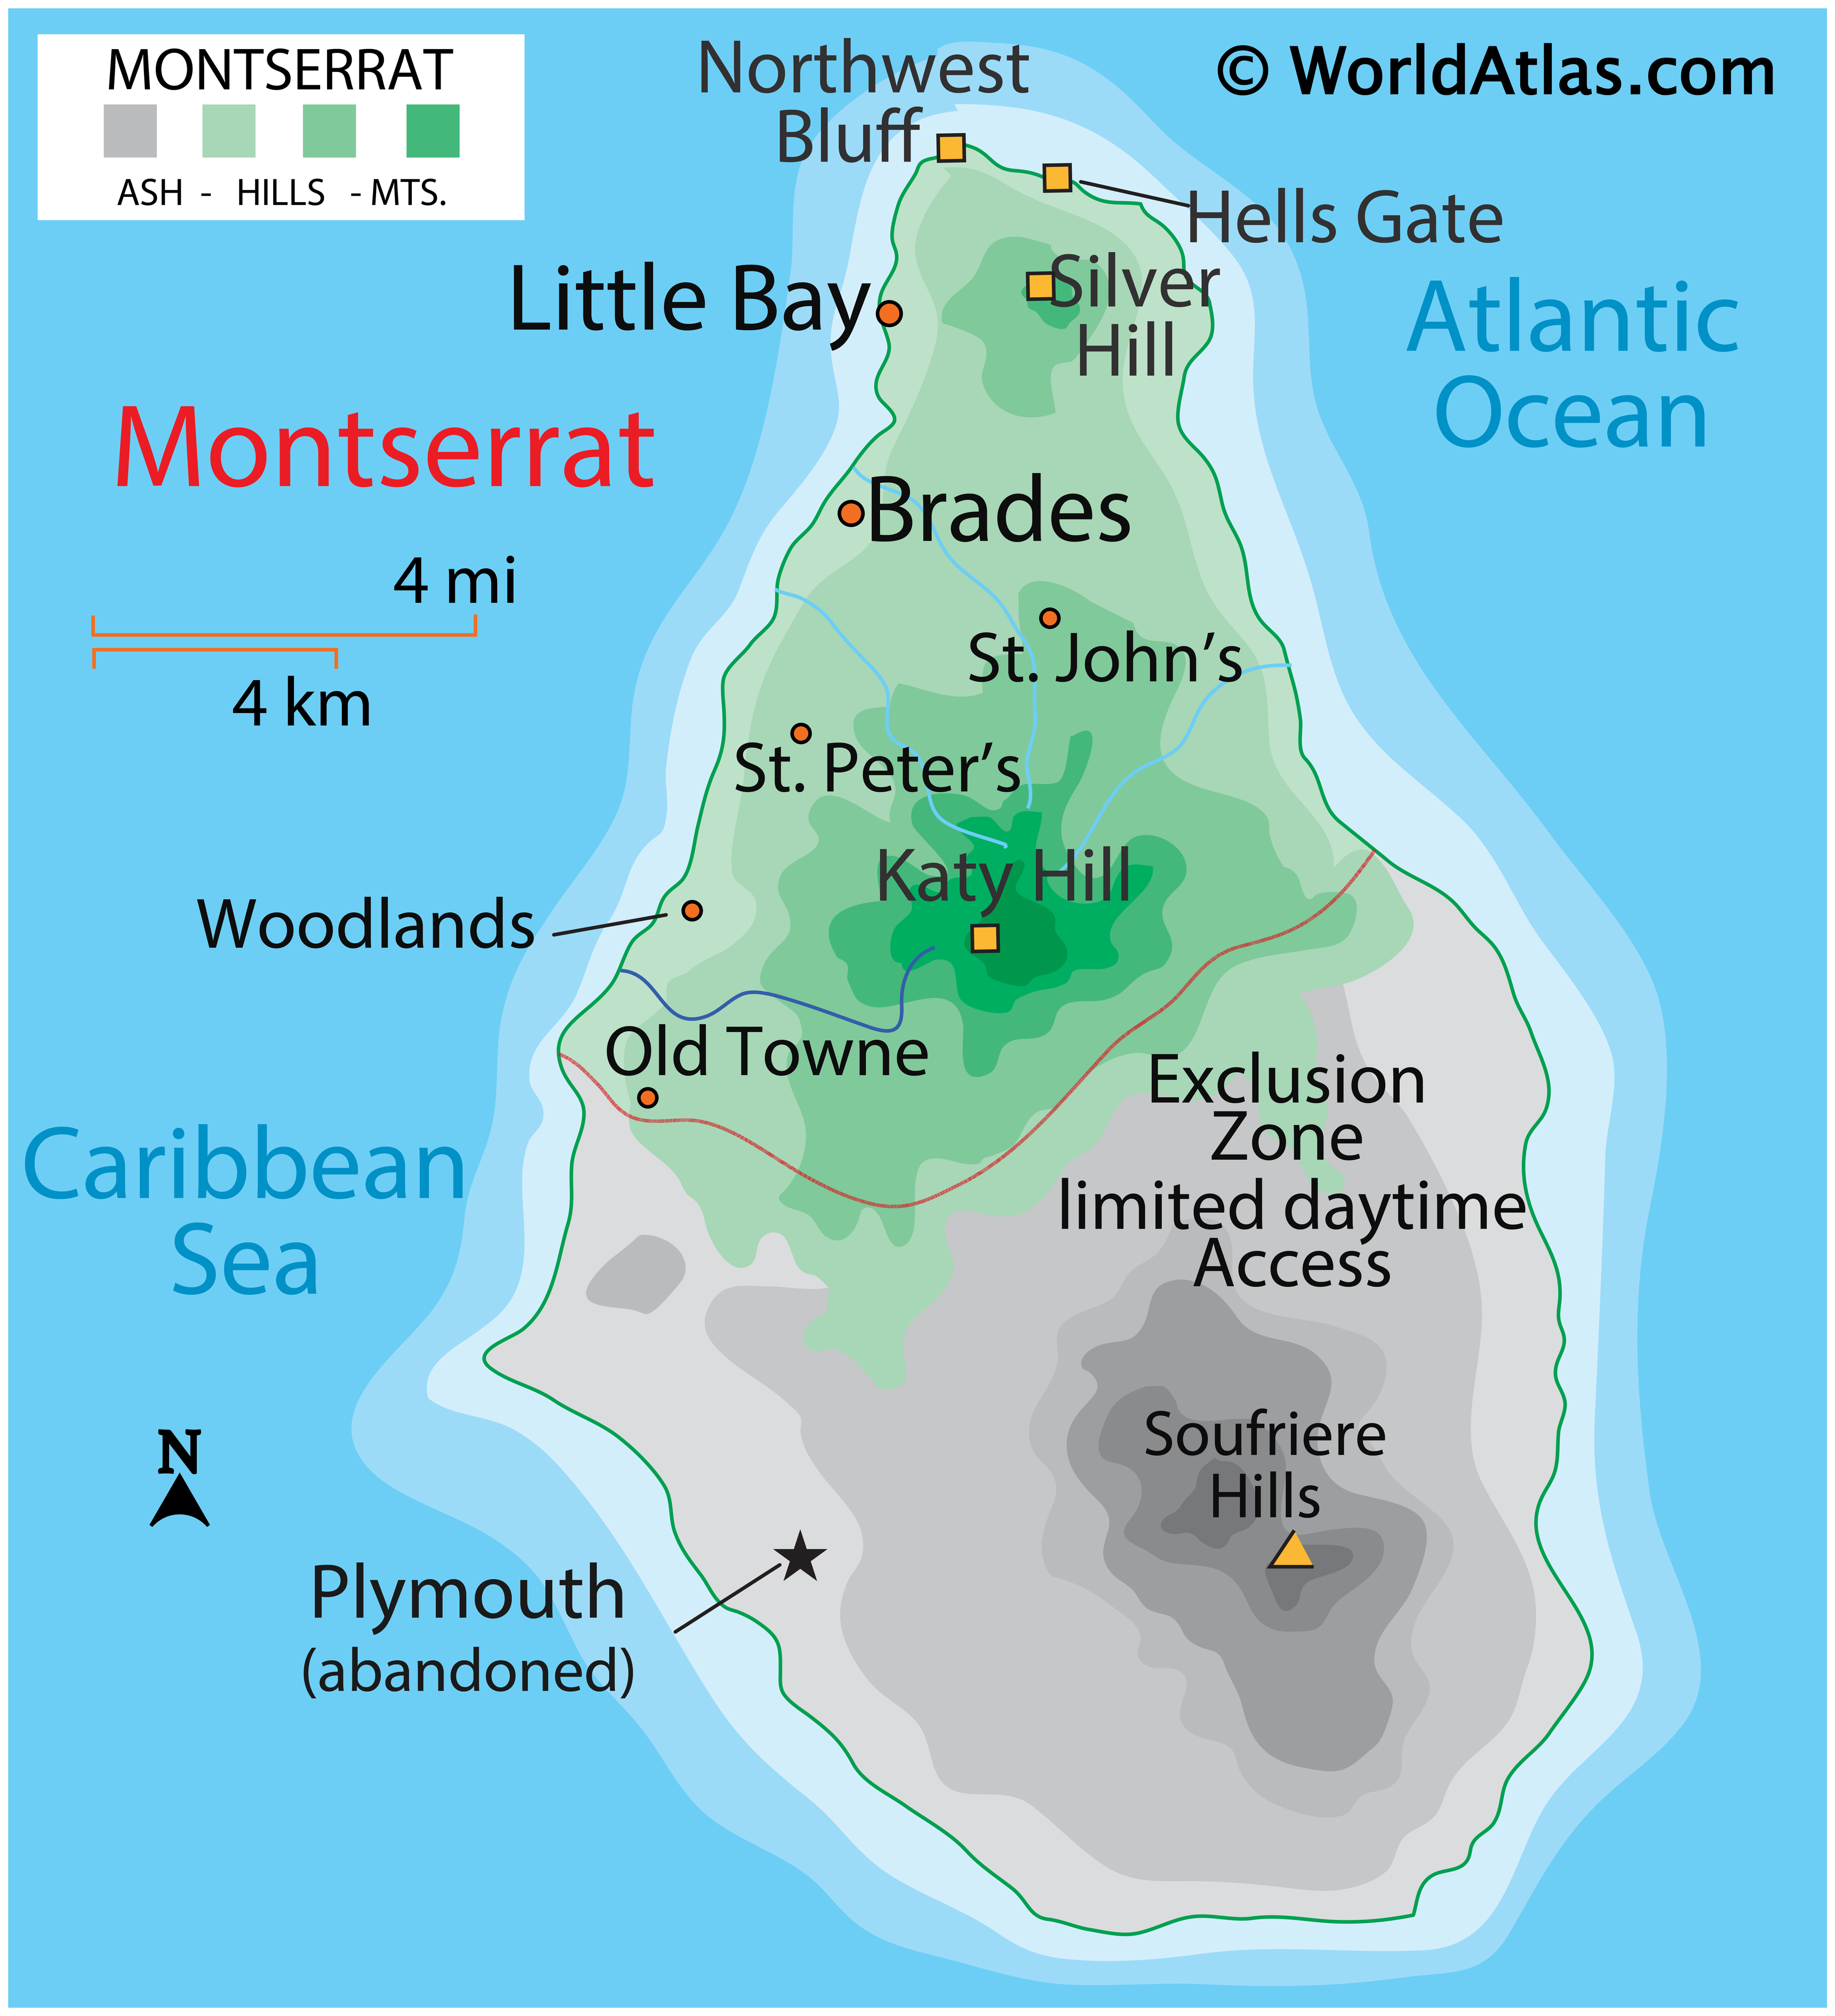 Physical Map of Montserrat showing relief, hills, highest point, Exclusion Zone, etc.